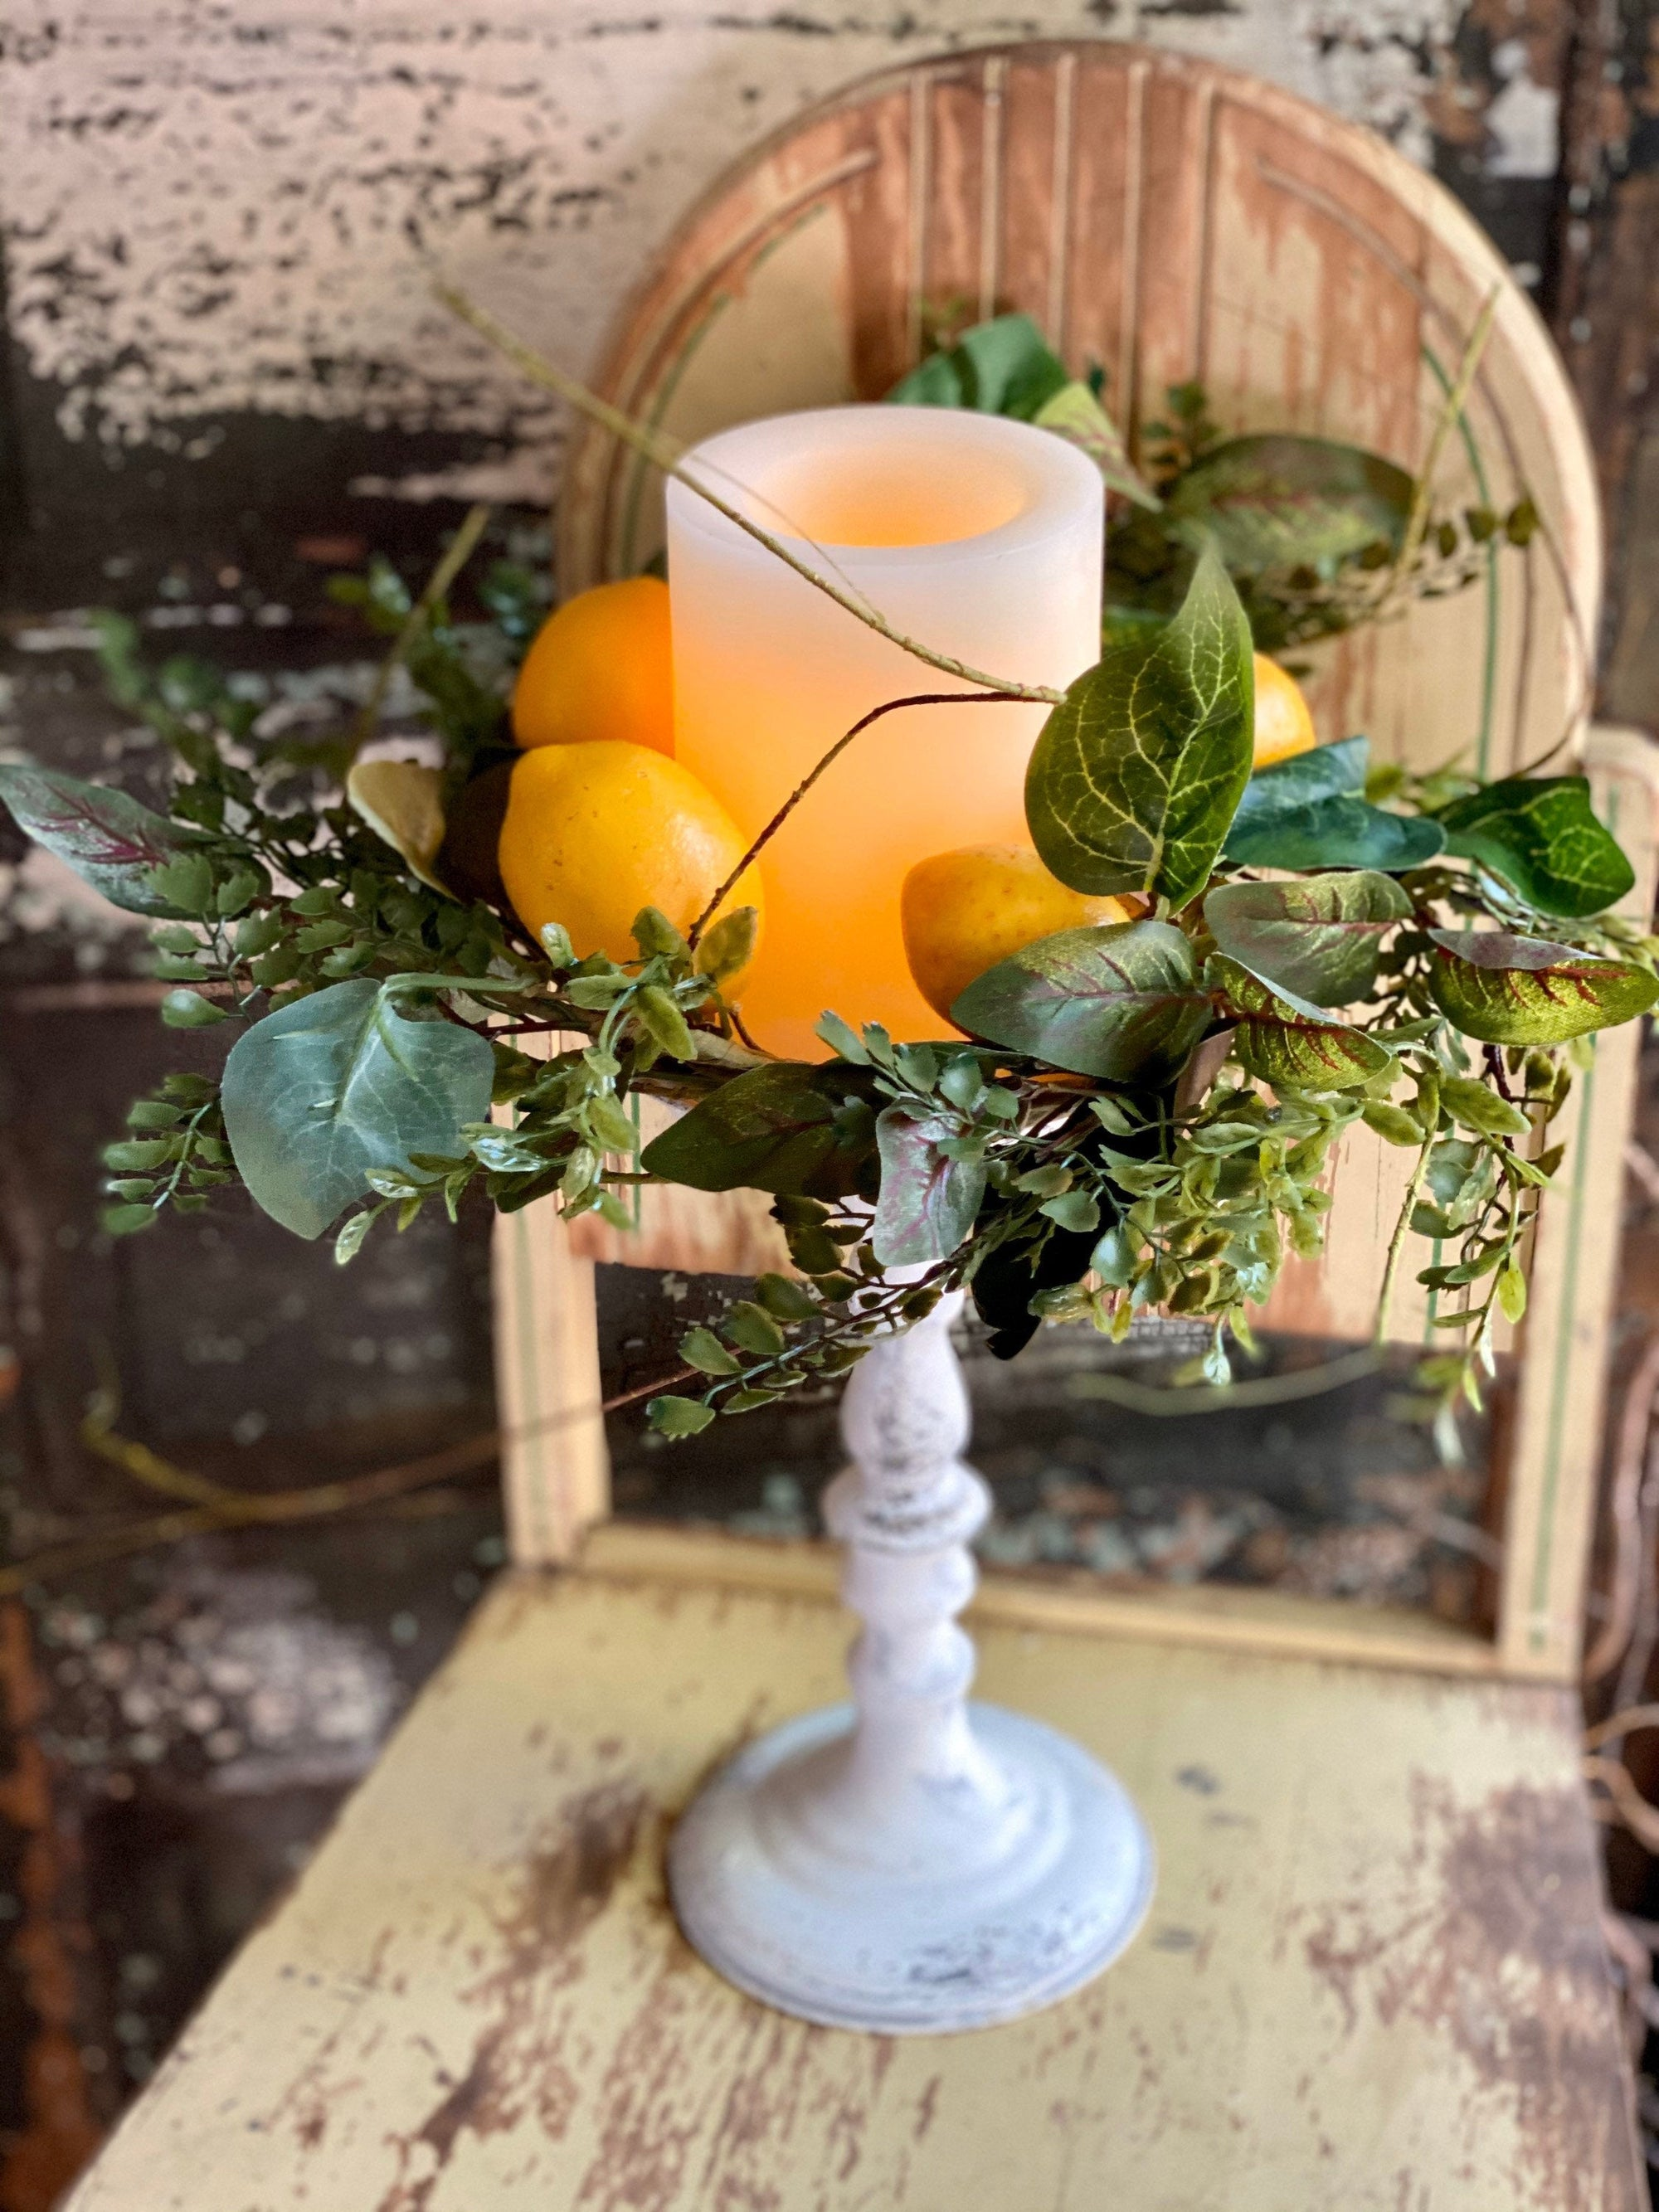 Lemon Candle Ring, Lemon Mini Wreath, Pillar Candle Wreath, Lemon Mantle decor, Kitchen island decor, farmhouse lemon decor